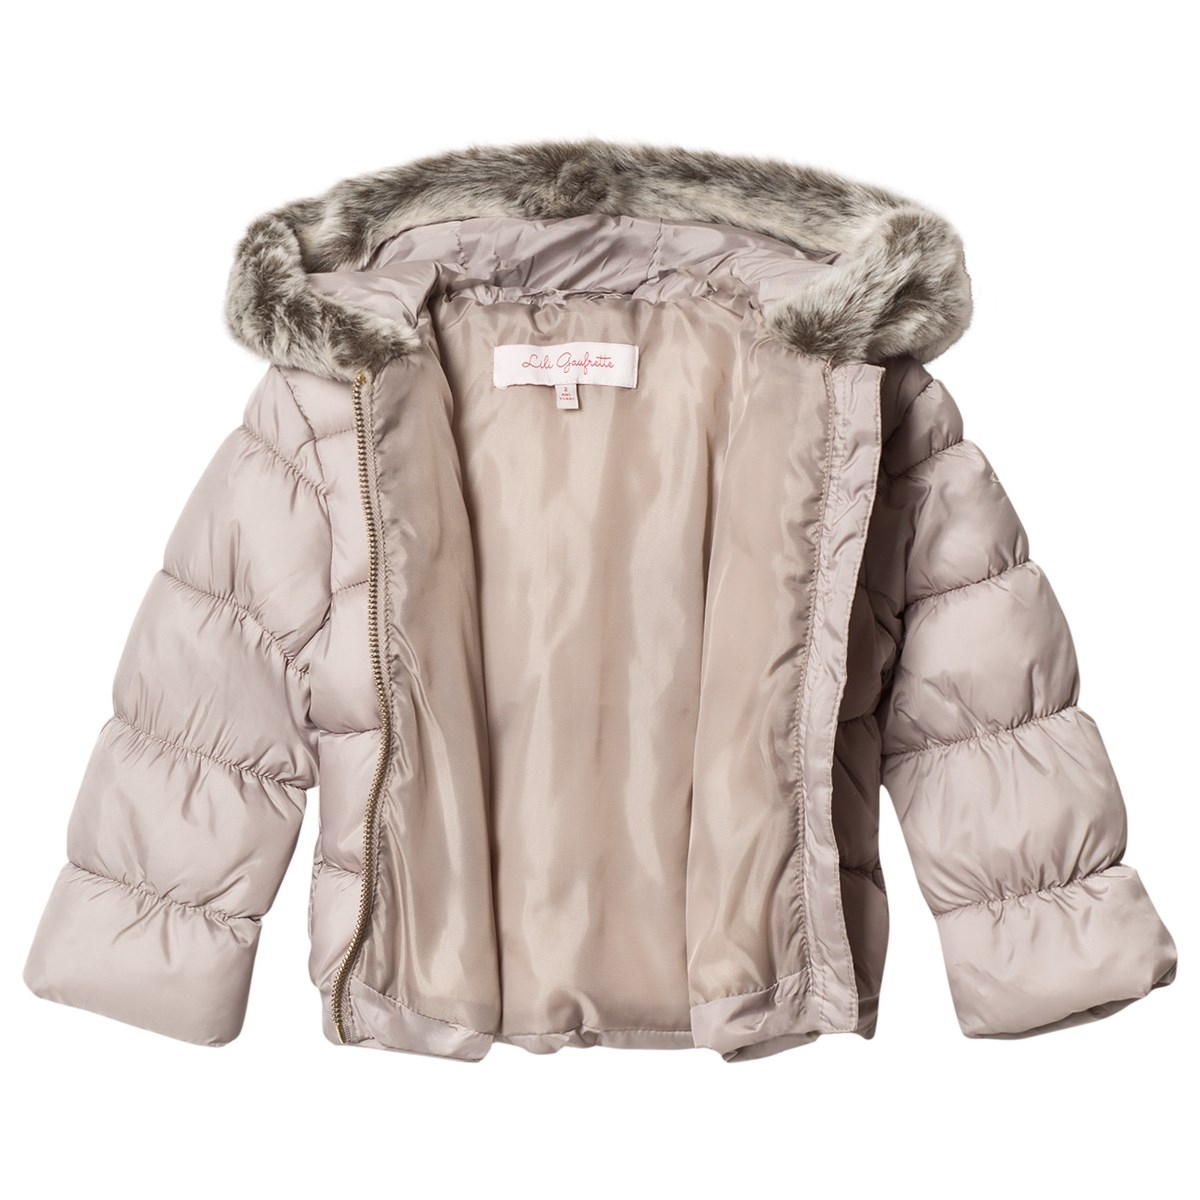 4bee9355e Lili Gaufrette Taupe Hooded Puffer Coat with Faux Fur Hood ...